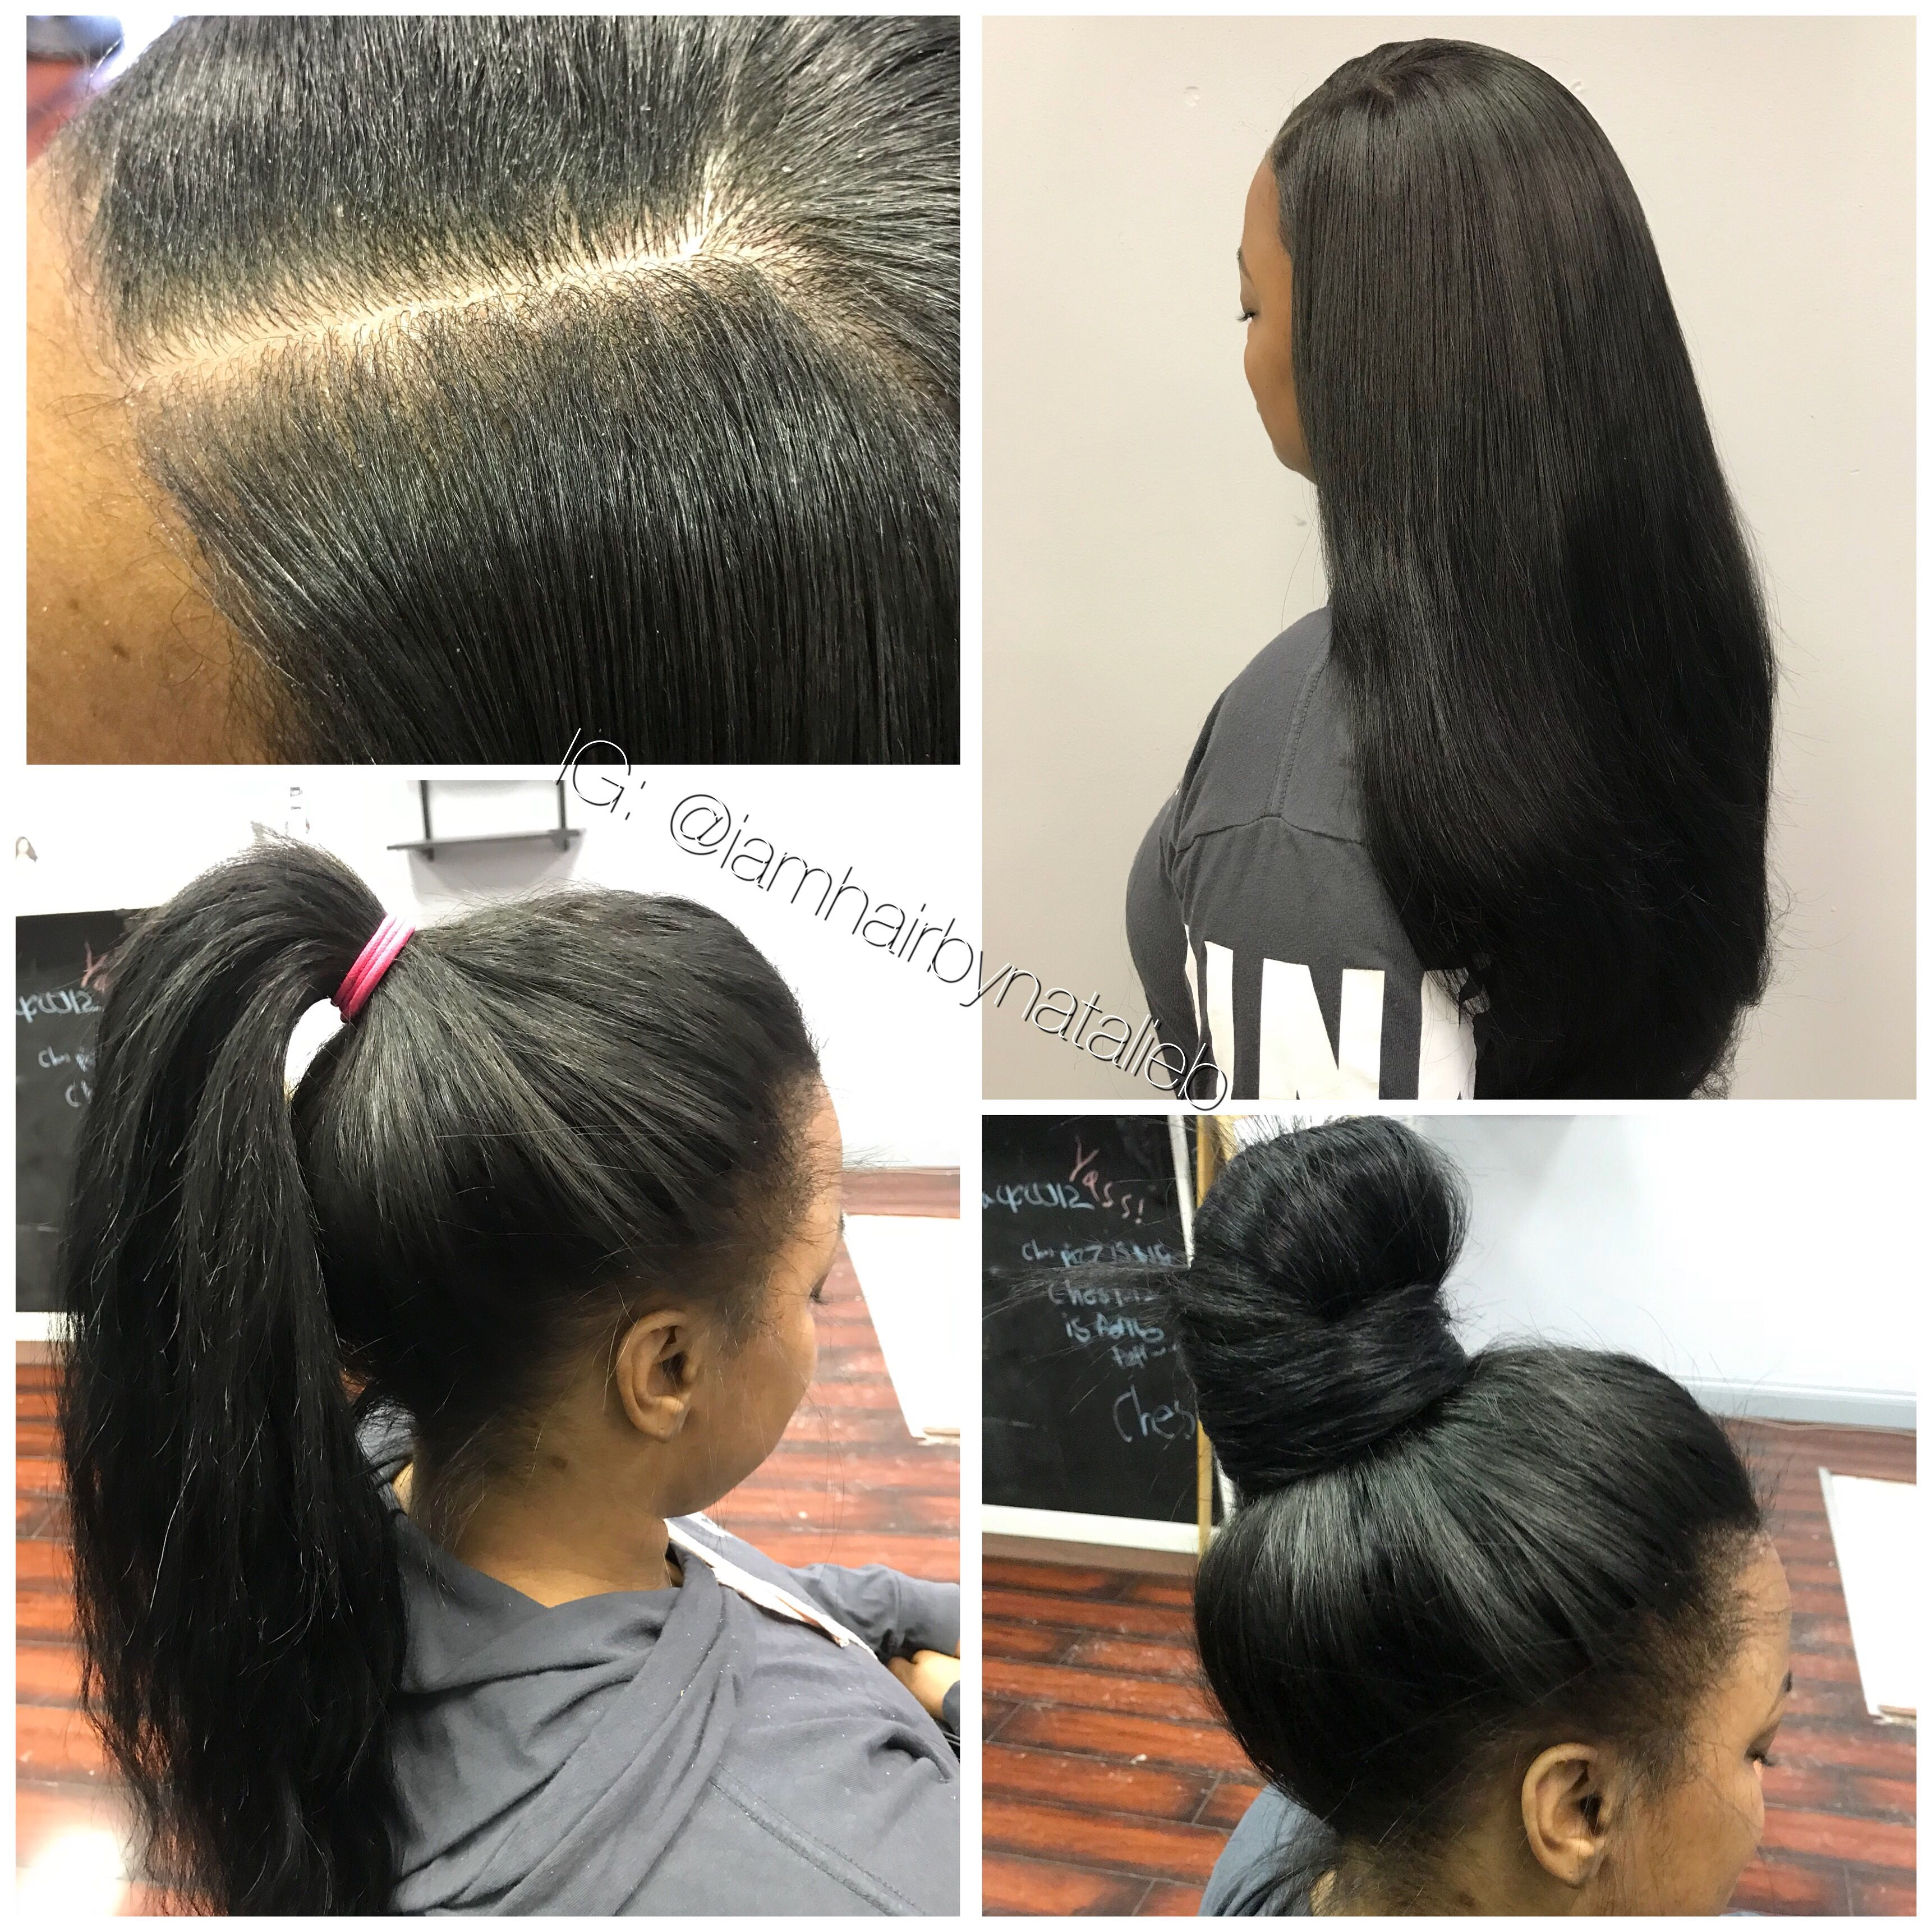 Natural Looking Versatile Sew In Hair Weave Can Be Worn In A High Ponytail Or Bun Lasts Natural Hair Stylists Weave Hairstyles Sew In Weave Hairstyles